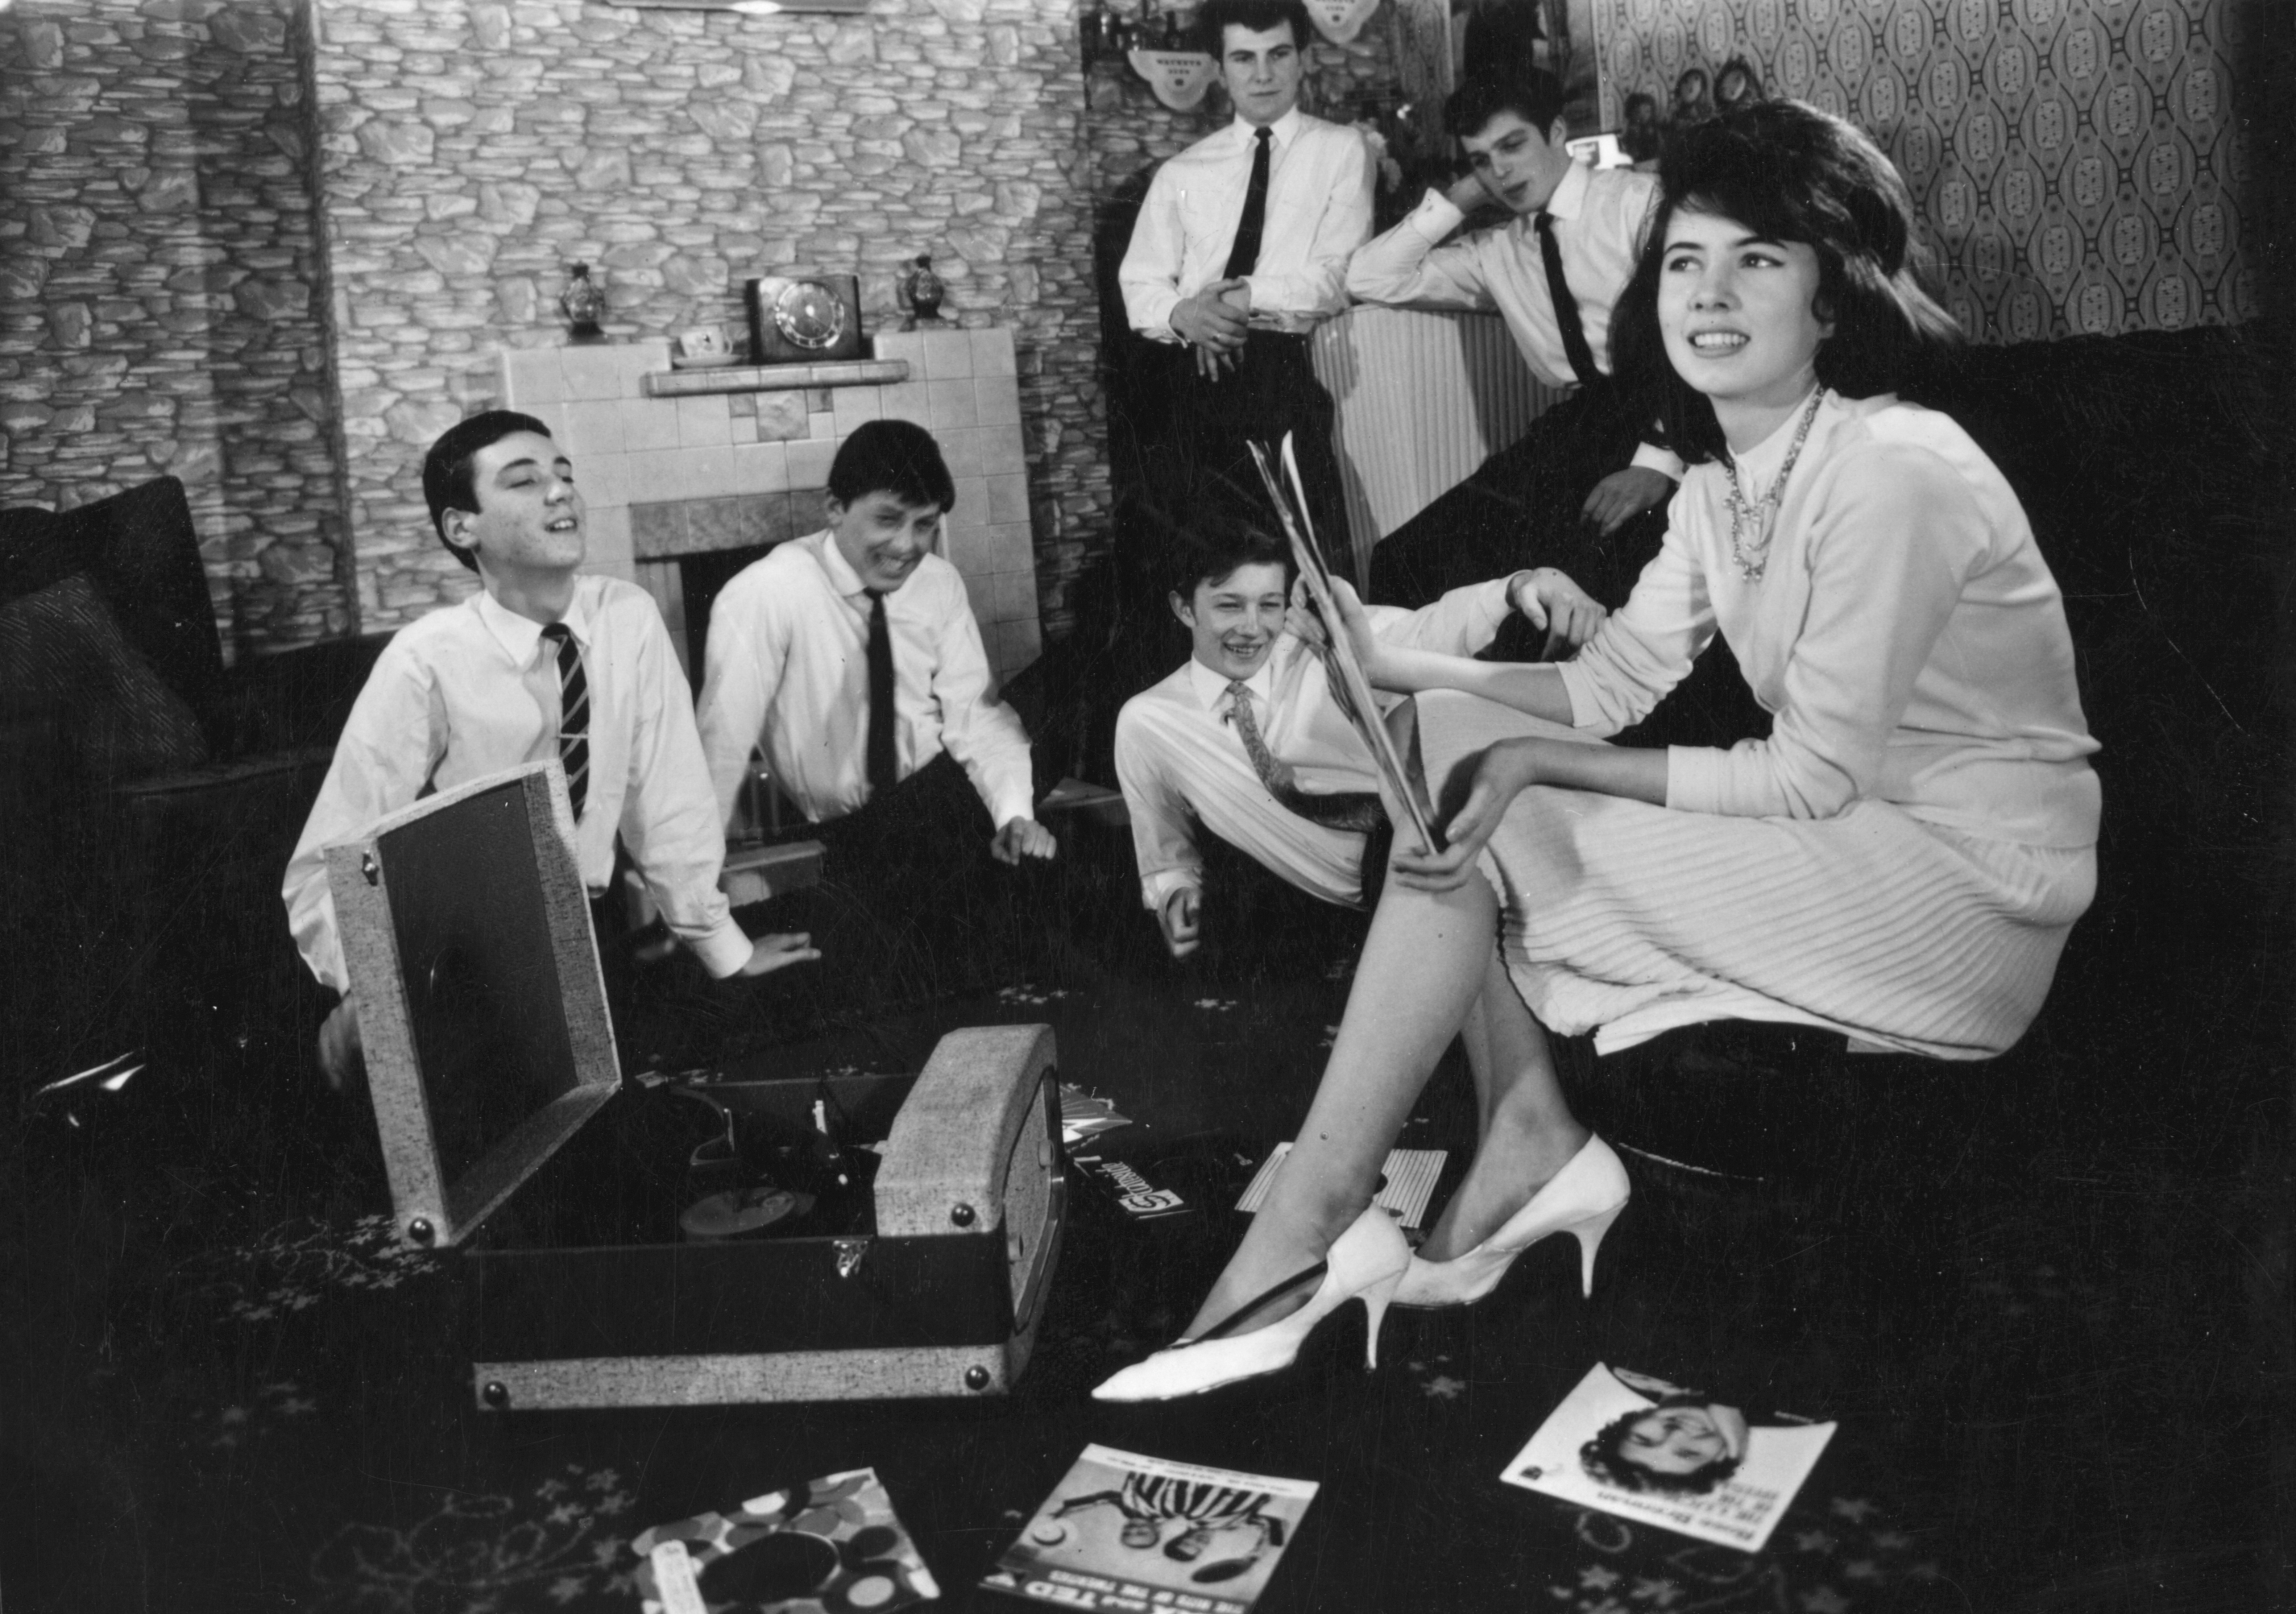 circa 1960: A group of teenagers listening to some records at home.